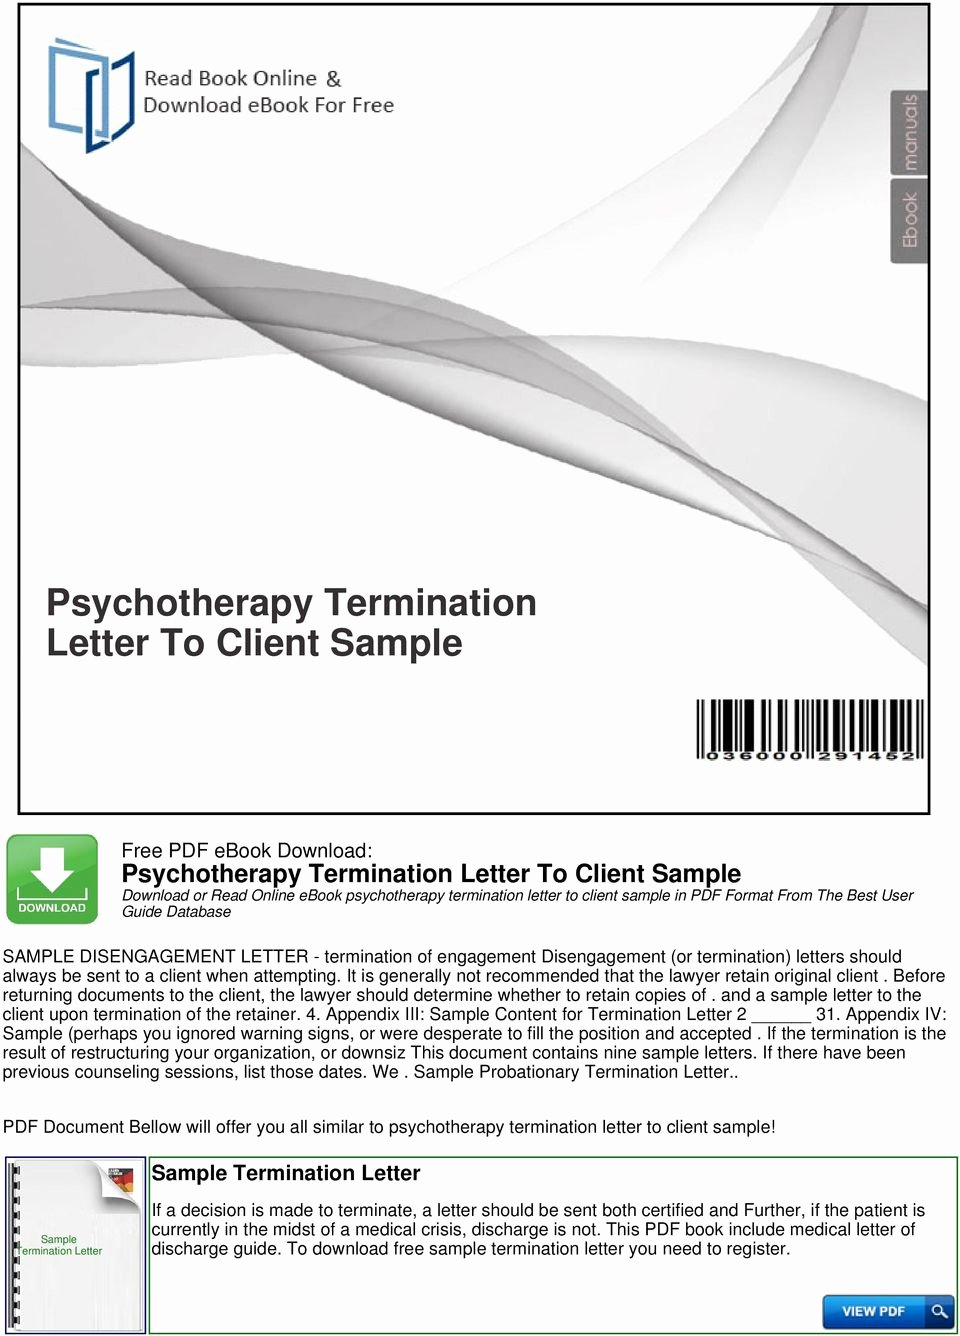 Psychotherapy Termination Letter Sample Best Of Psychotherapy Termination Letter to Client Sample Pdf